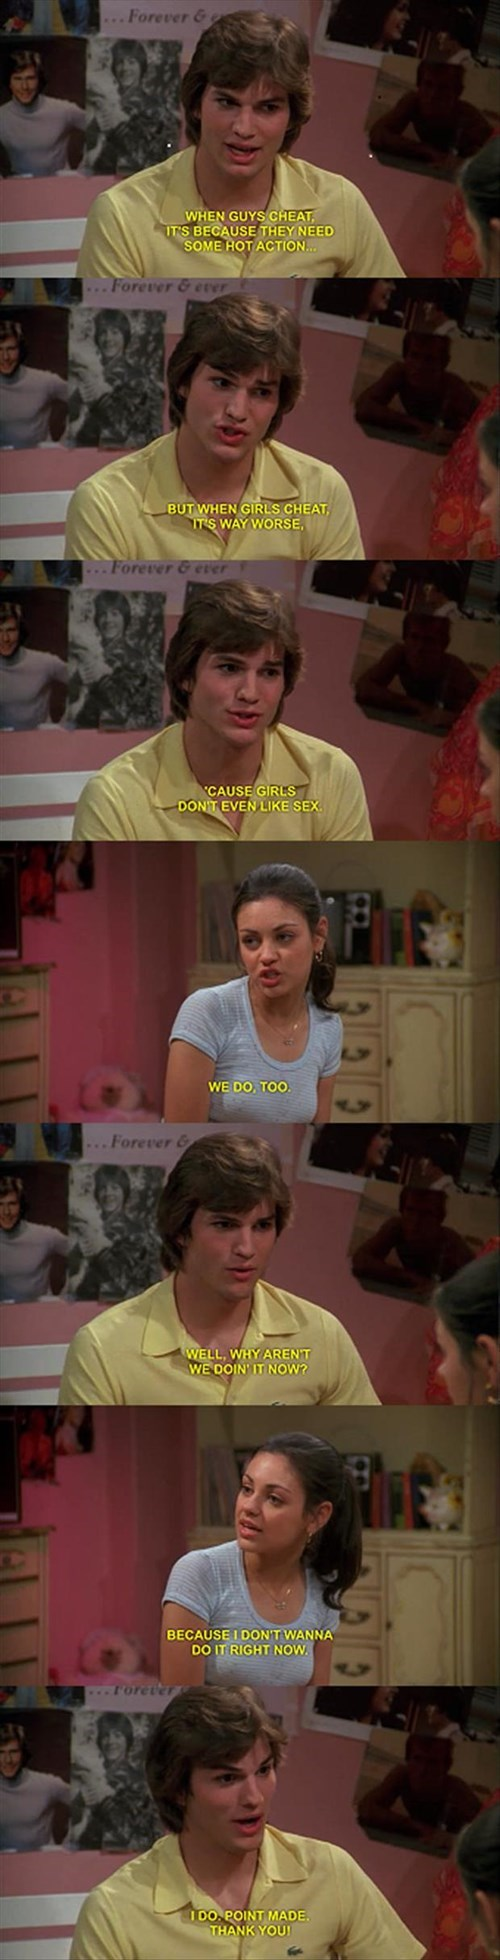 sex,that 70s show,case in point,men vs women